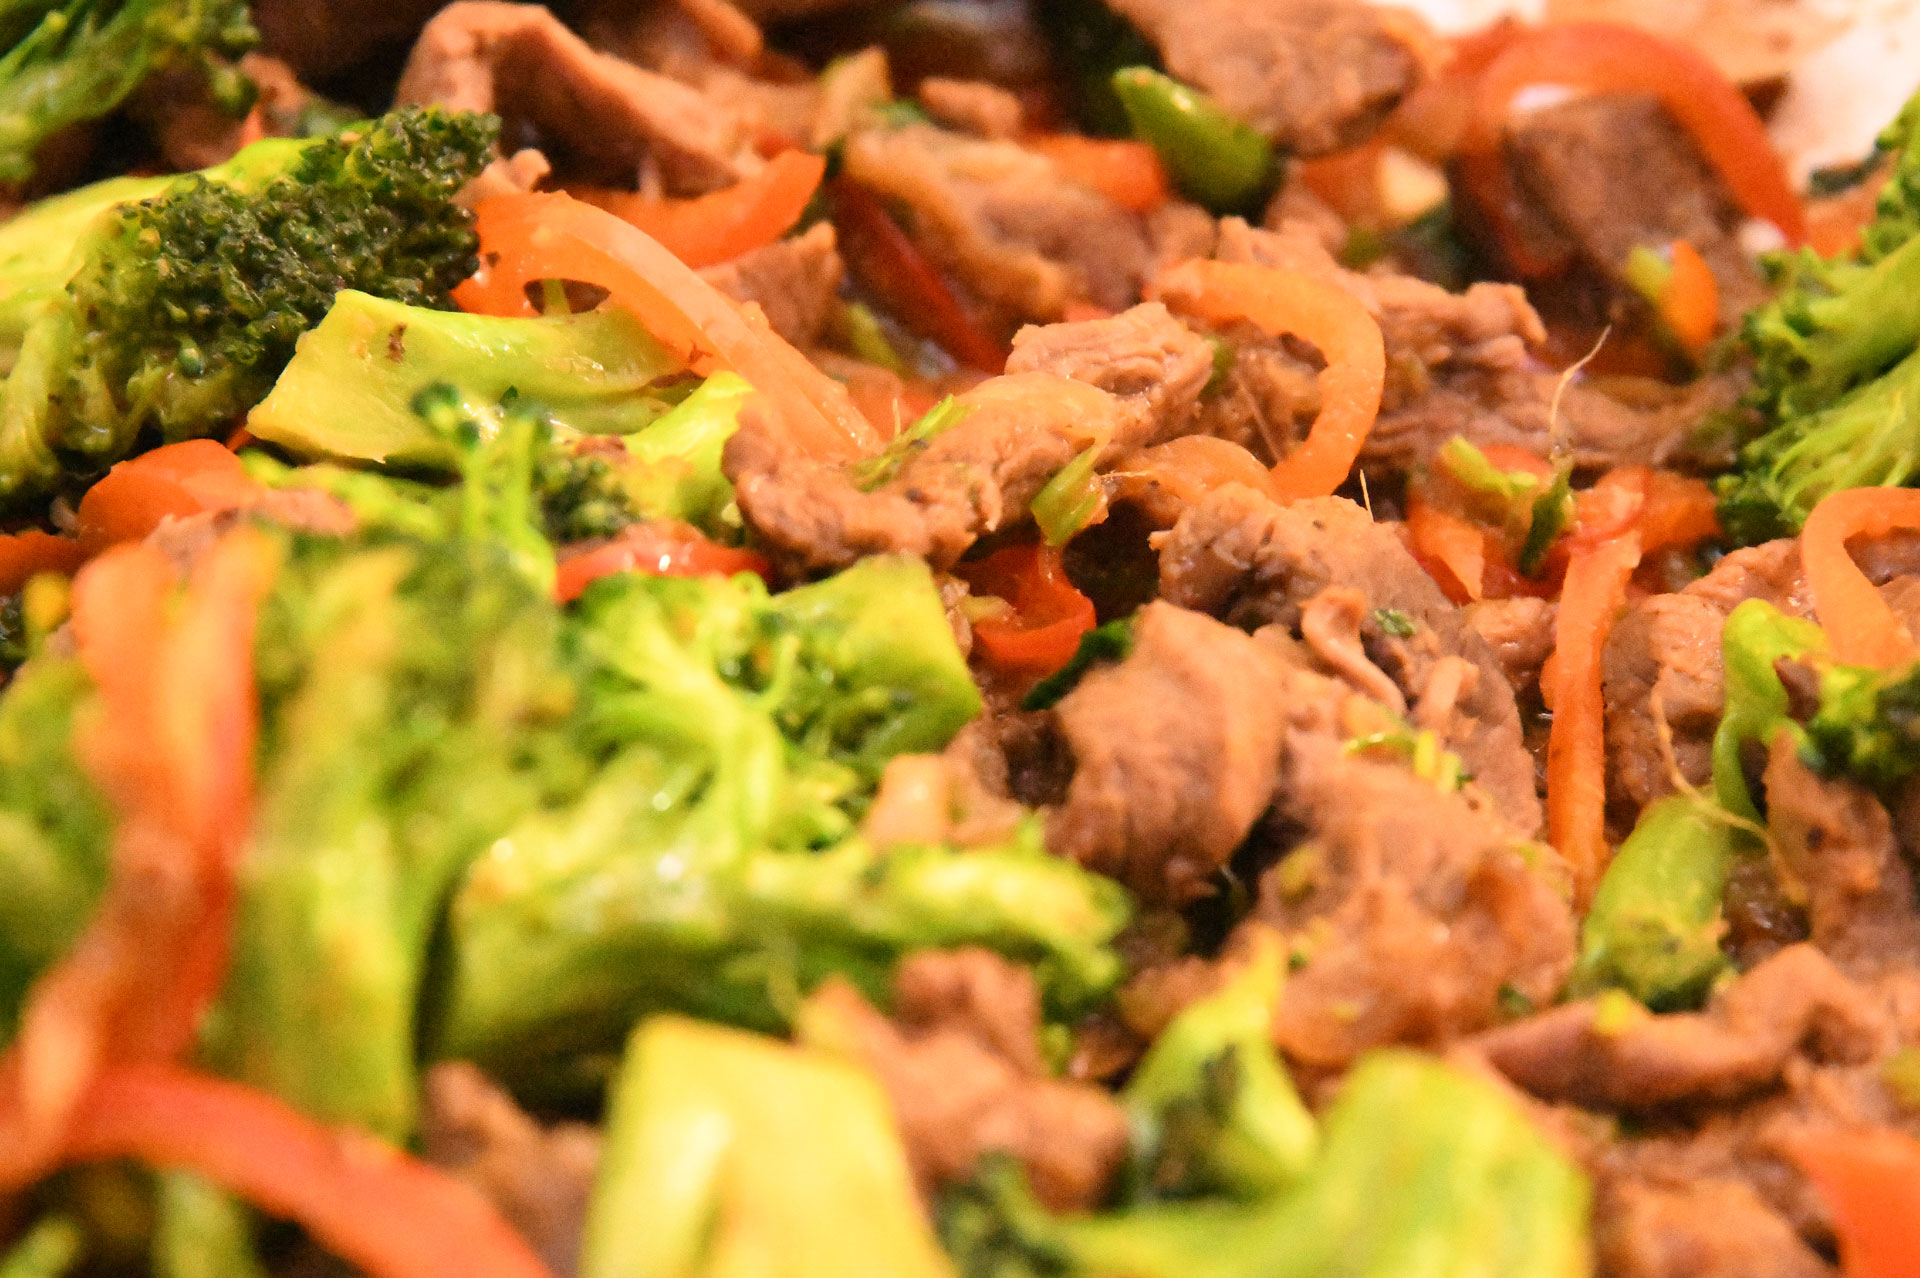 Tasty Broccoli and Beef Fry